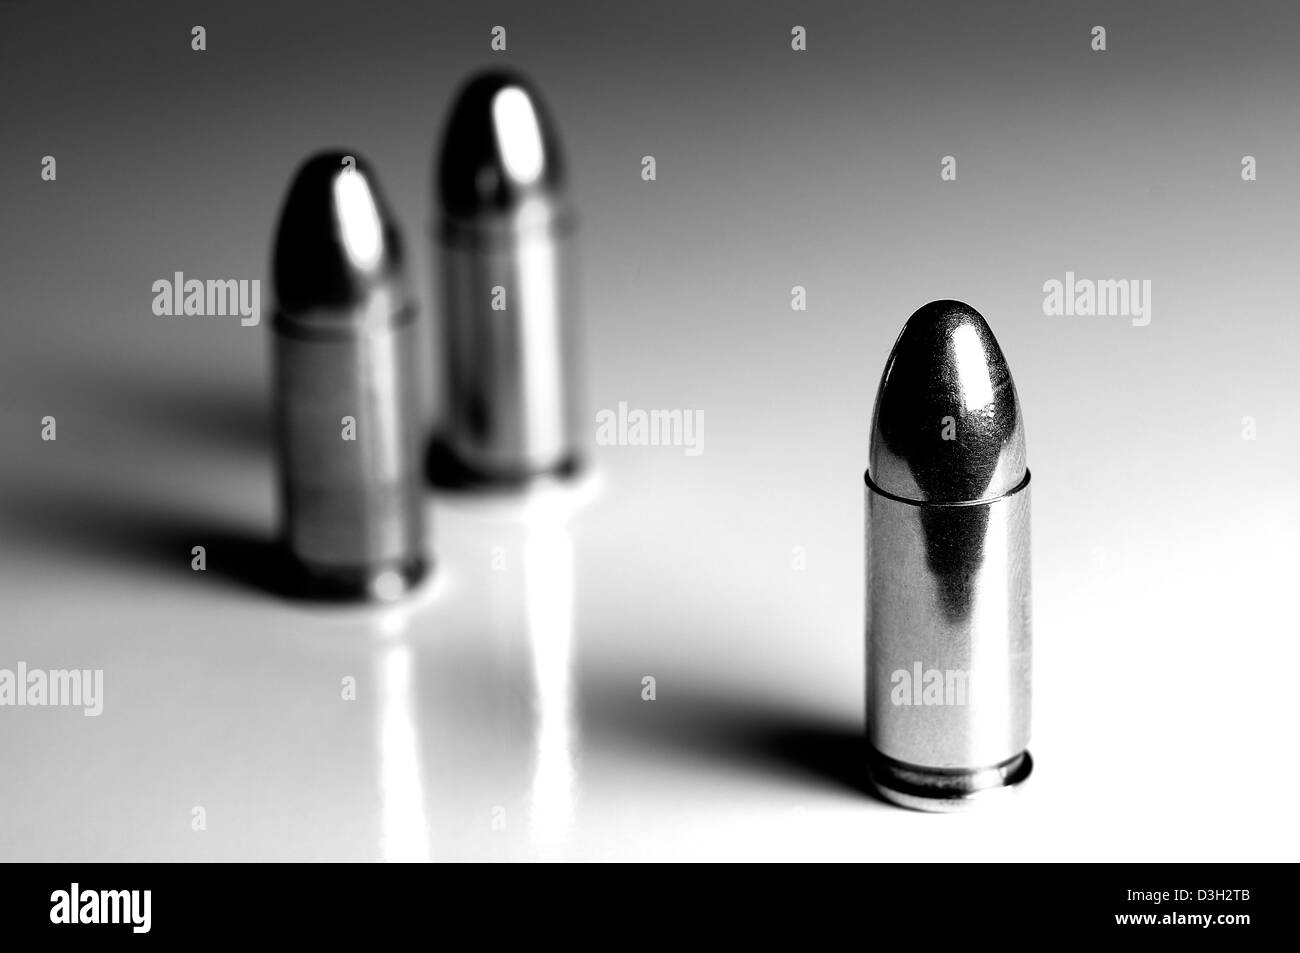 9mm Winchester Luger bullets against white backdrop. - Stock Image